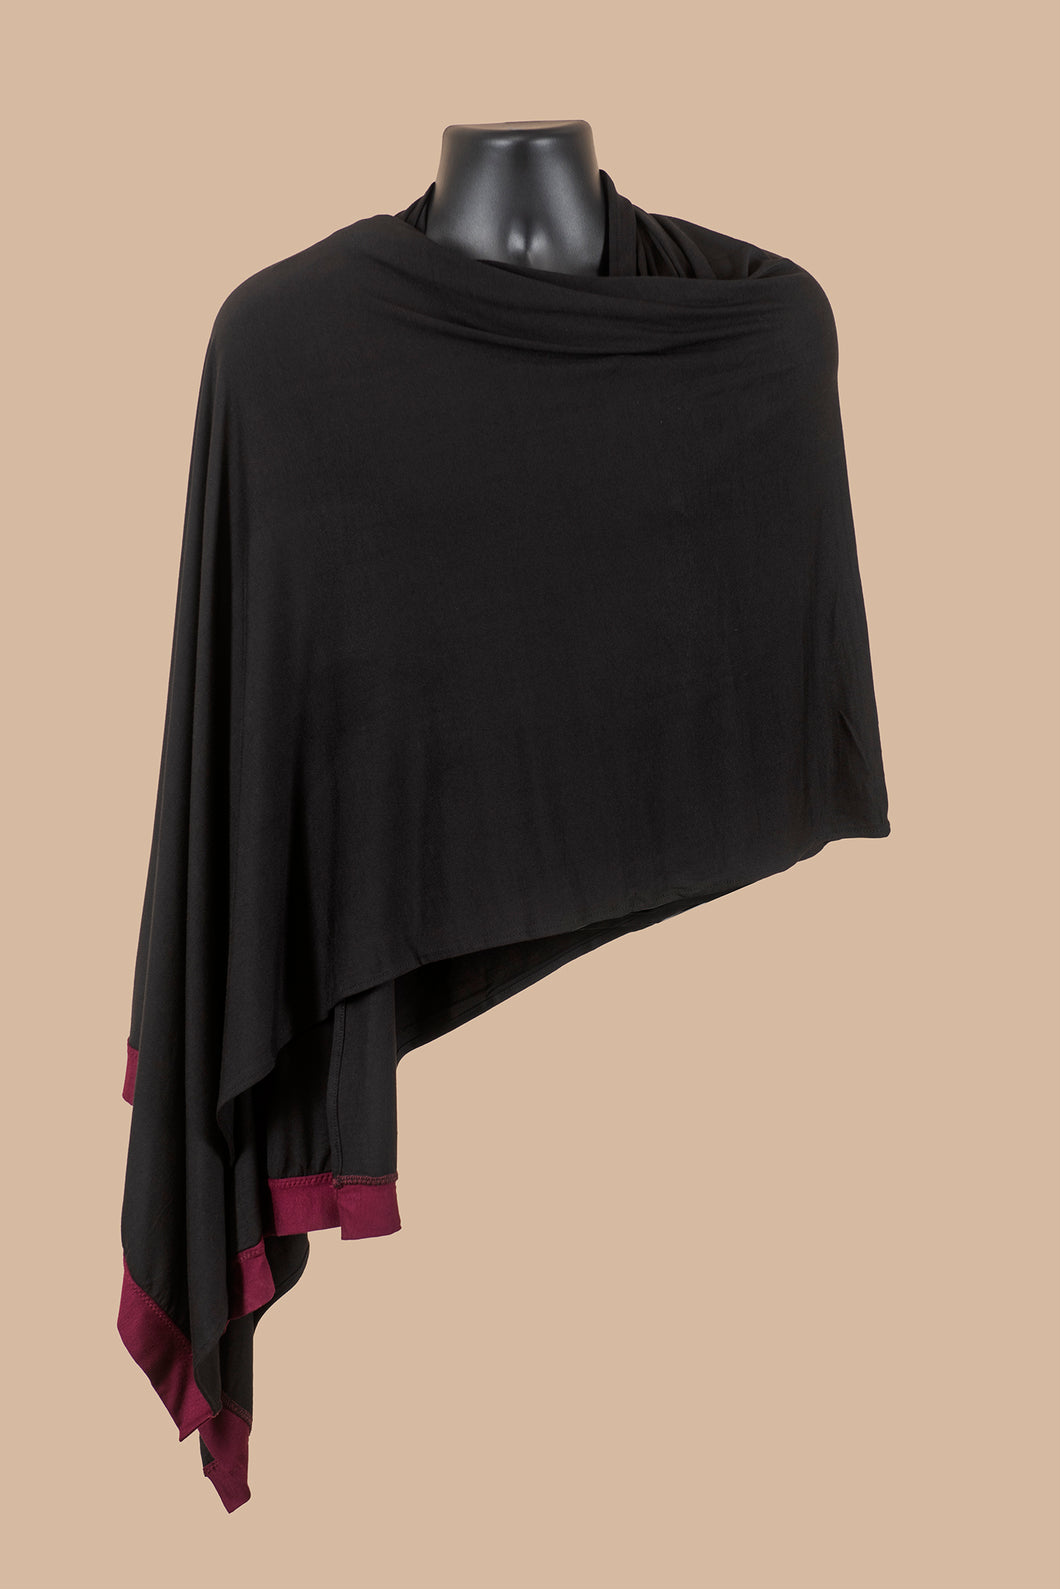 Wrap Shawl in Pitch Black with Burgundy Edges